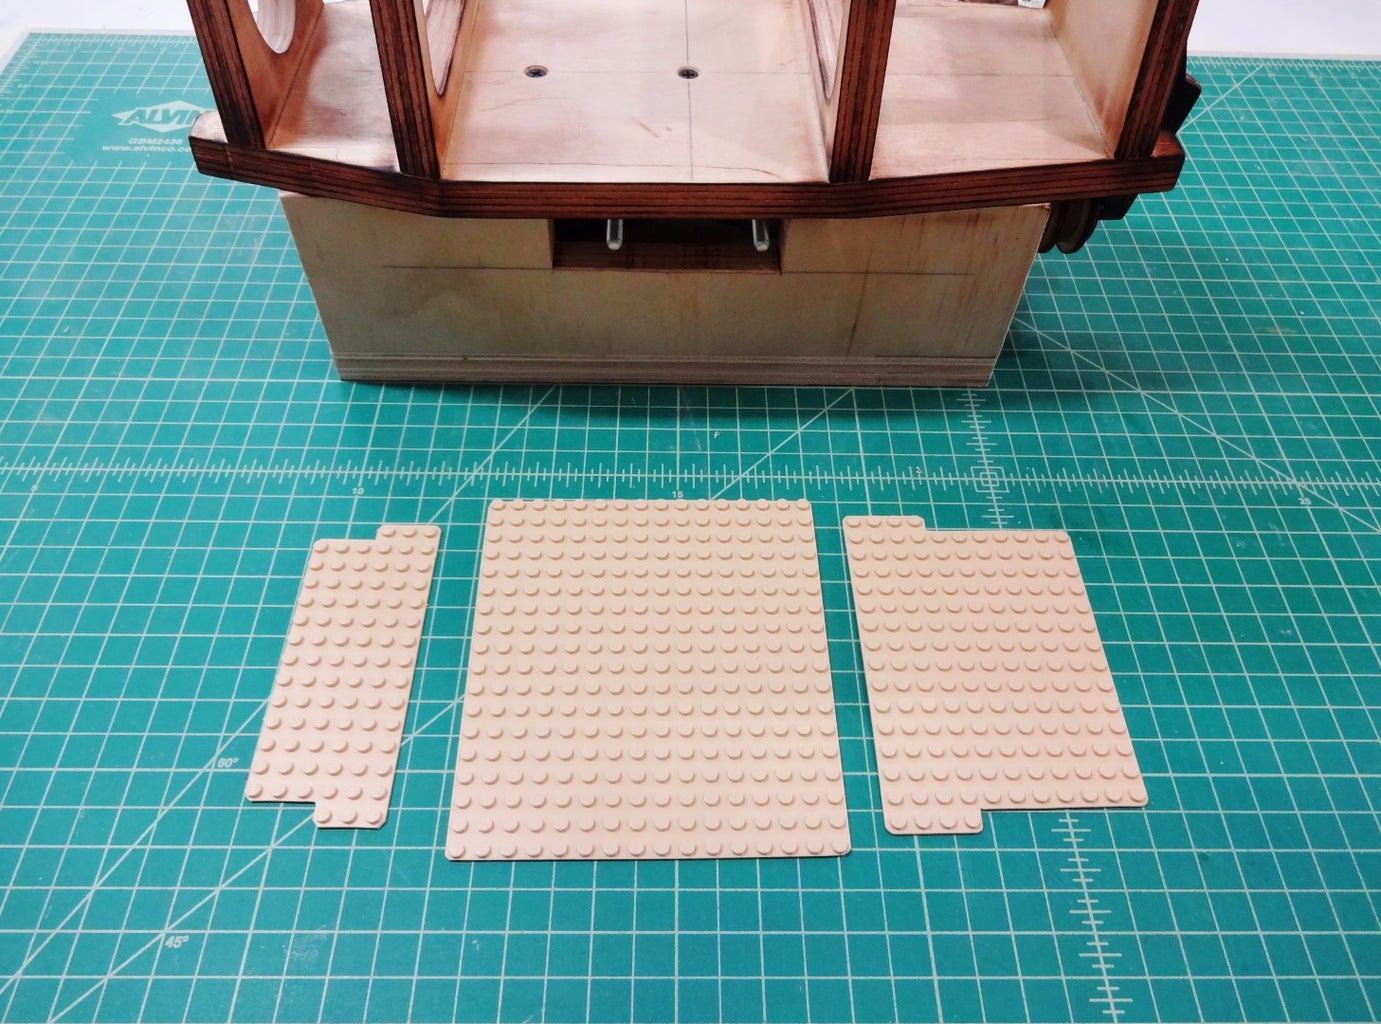 Gluing in LEGO Plates